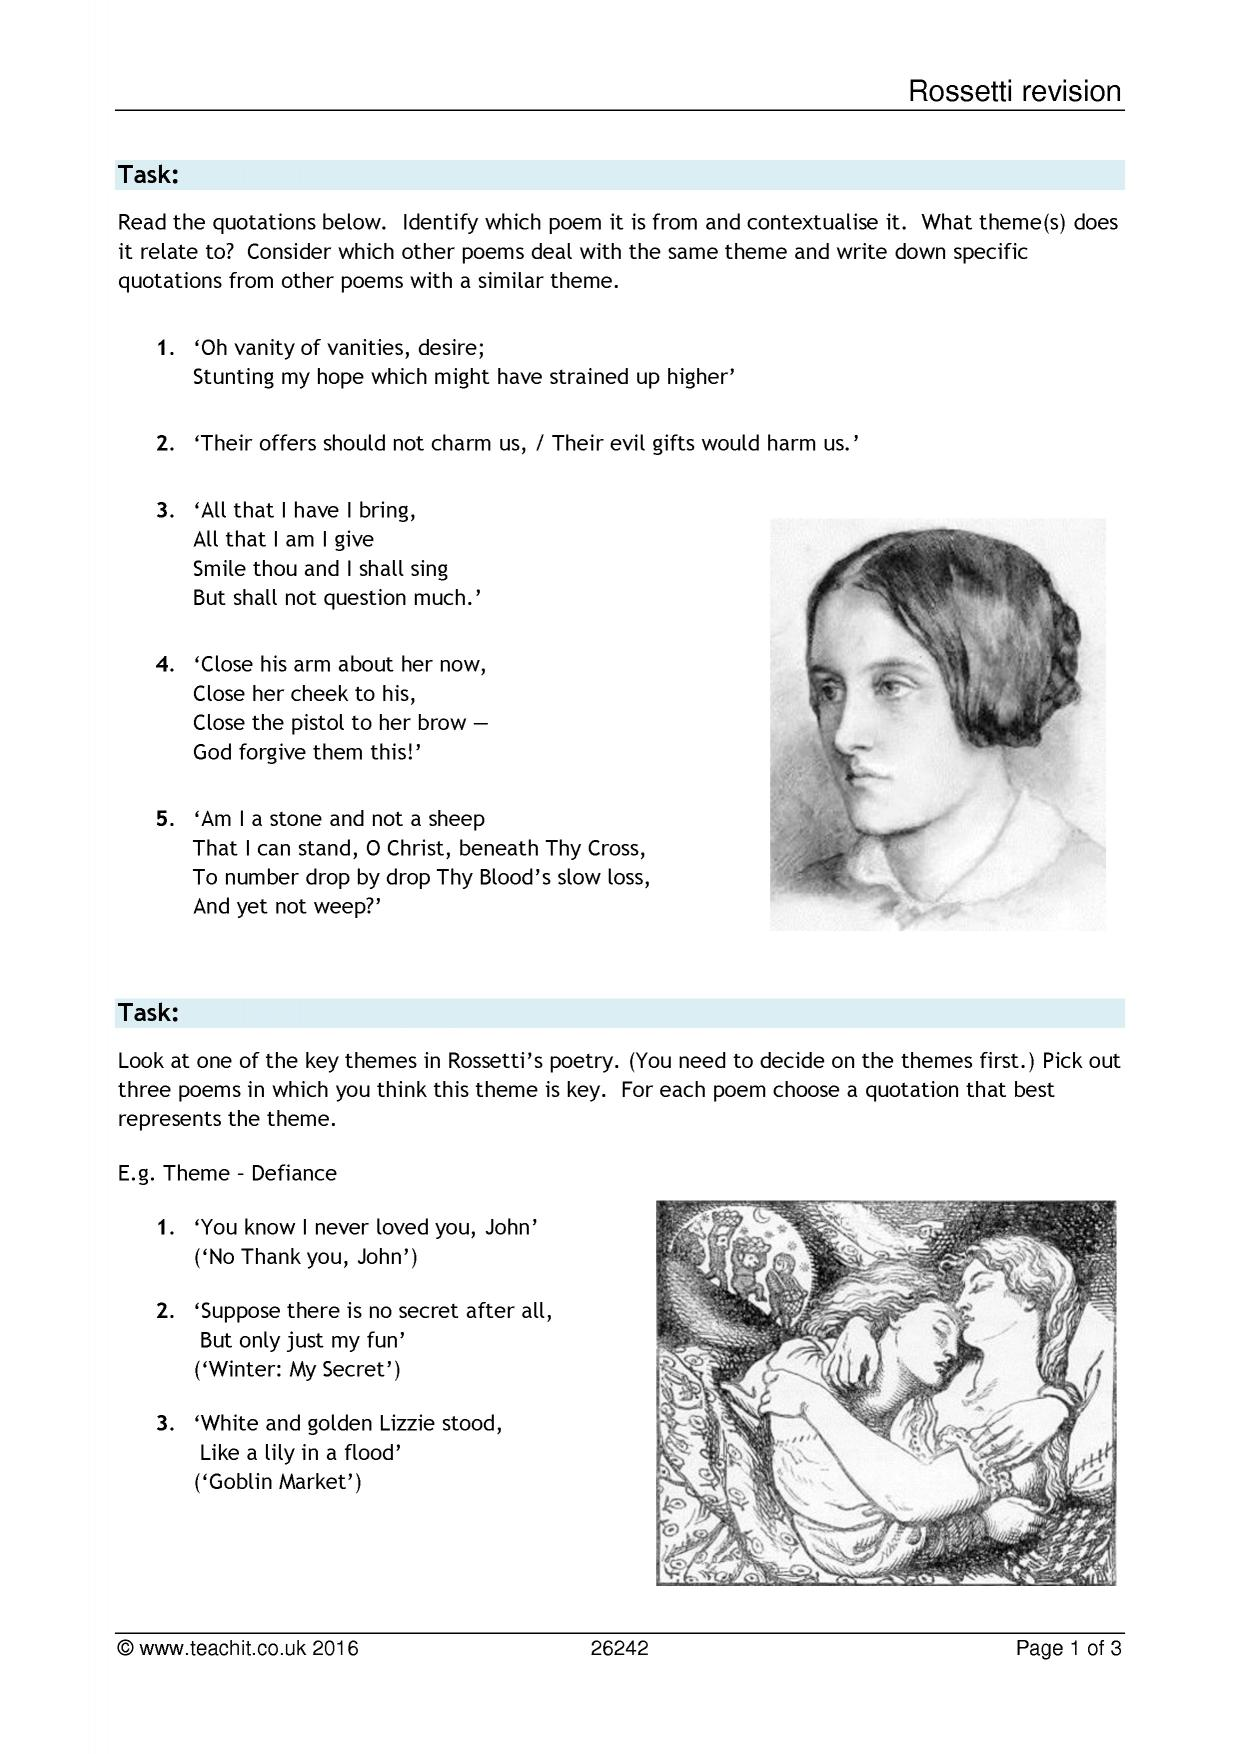 analysis of the poem remember by christina rossetti Christina rossetti's remember is a petrarchan sonnet with the rime scheme abbaabba in the octave and cddece in the sestet the petrarchan, or italian analysis of poem nothing gold can stay by robert frost by andrew spacey 0 literature.